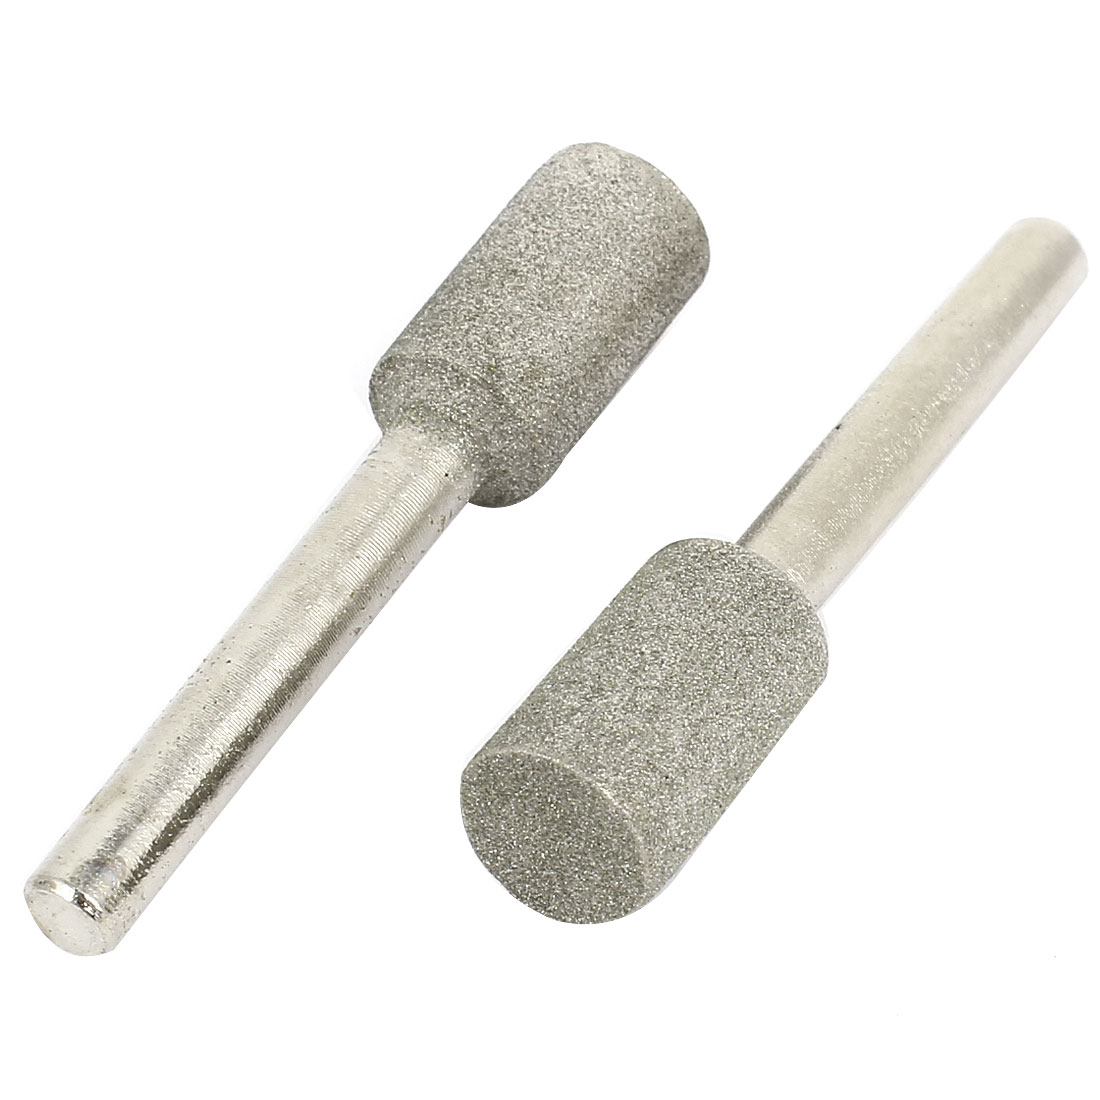 2pcs 6mm Alloy Straight Shank Diamond Mounted Point Grinding Head 60mm Length